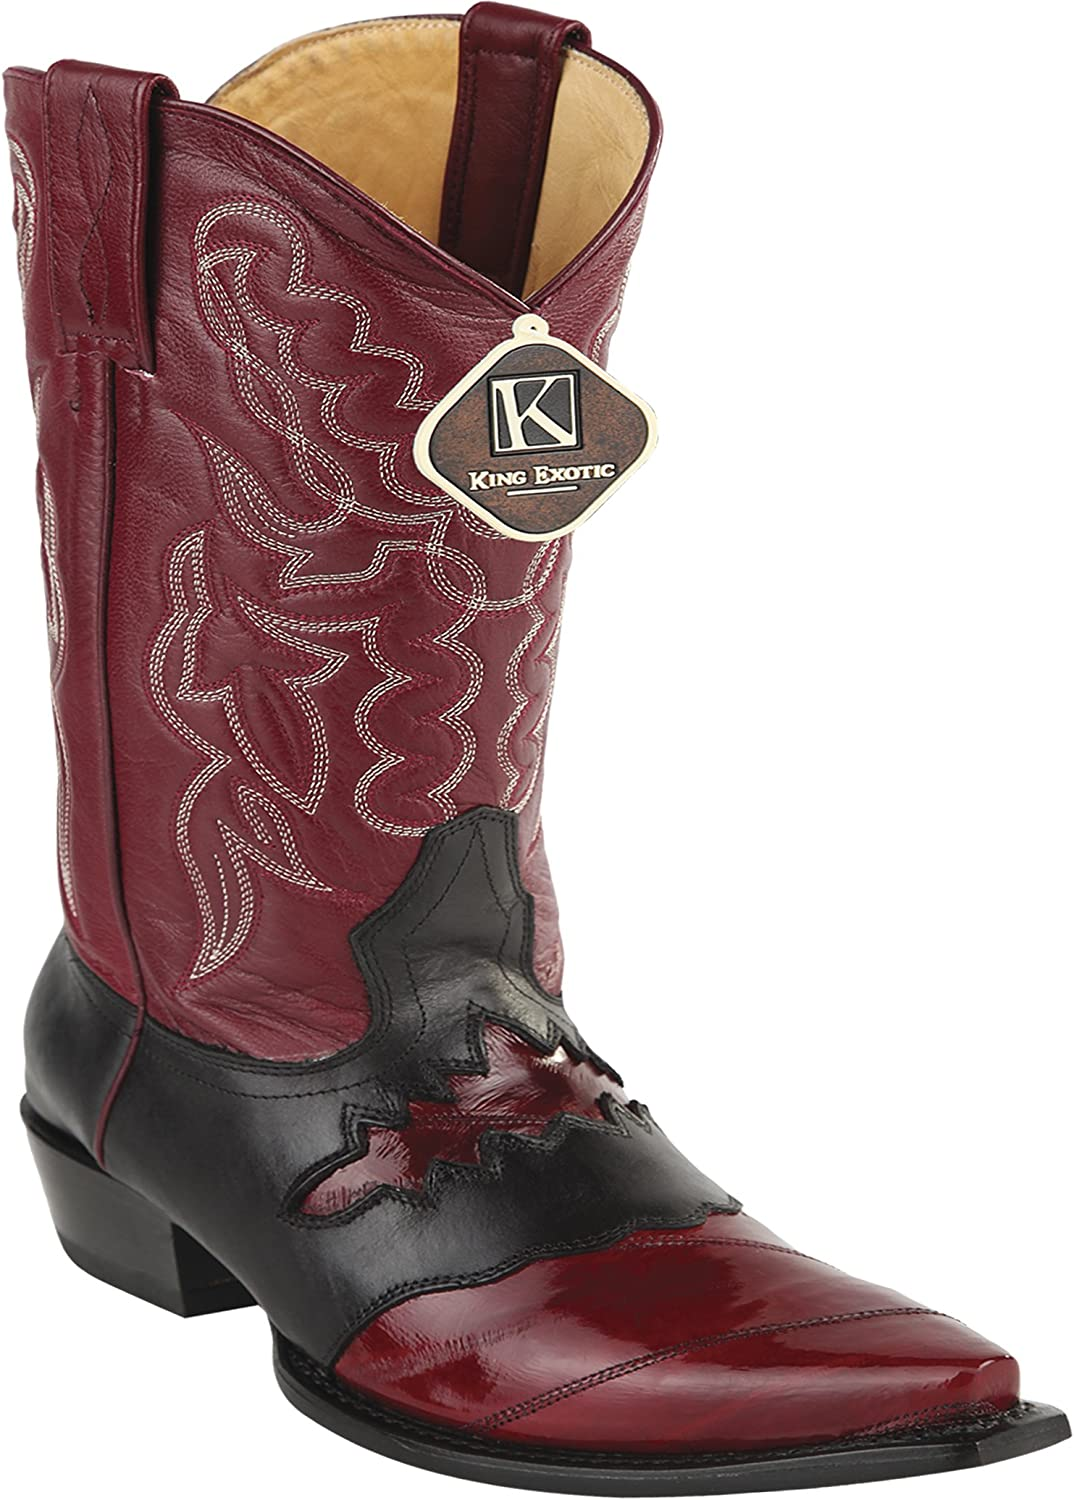 Women's Snip Toe Genuine Leather Sadded EEL Skin Western Boots